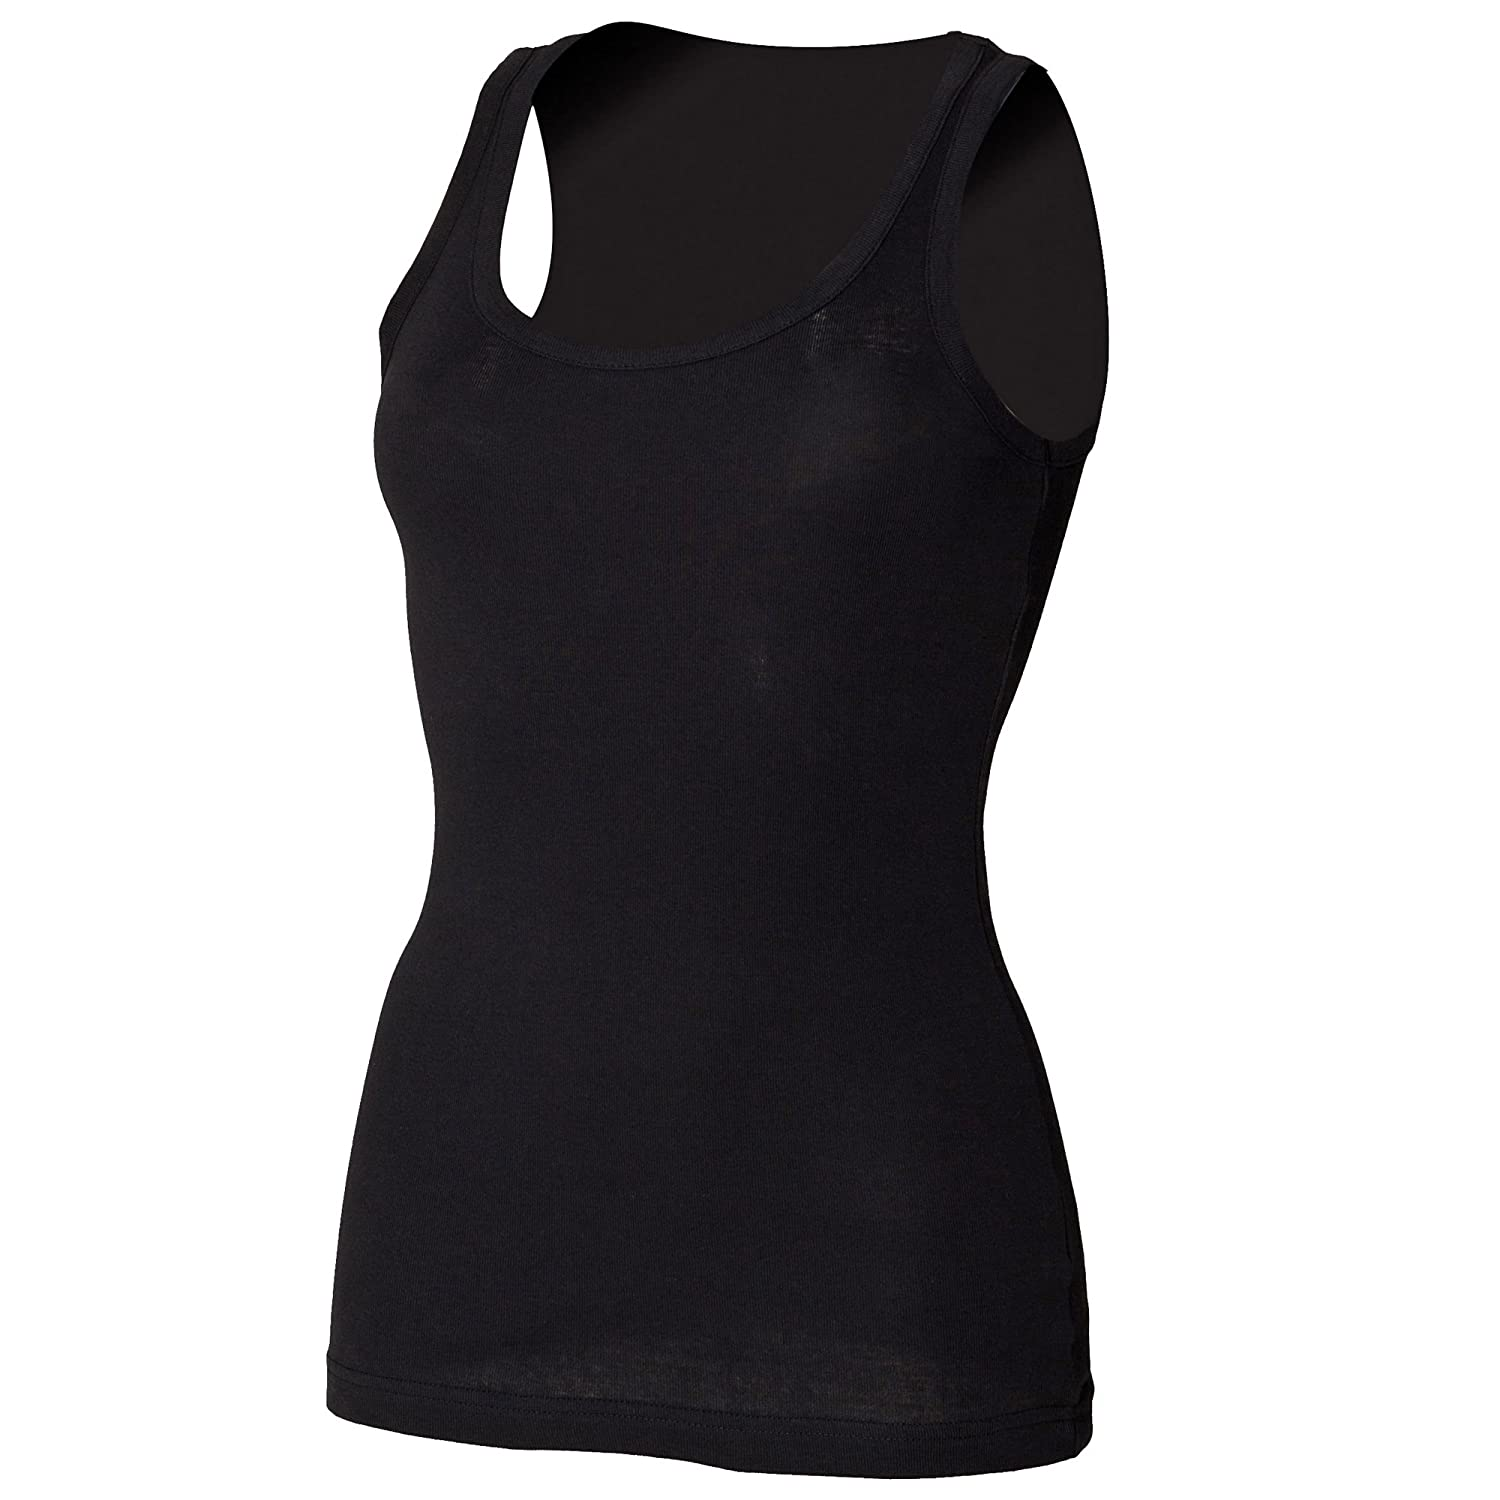 Skinni Fit Women's Rib Tank Top at Amazon Women's Clothing store: Fashion  Vests